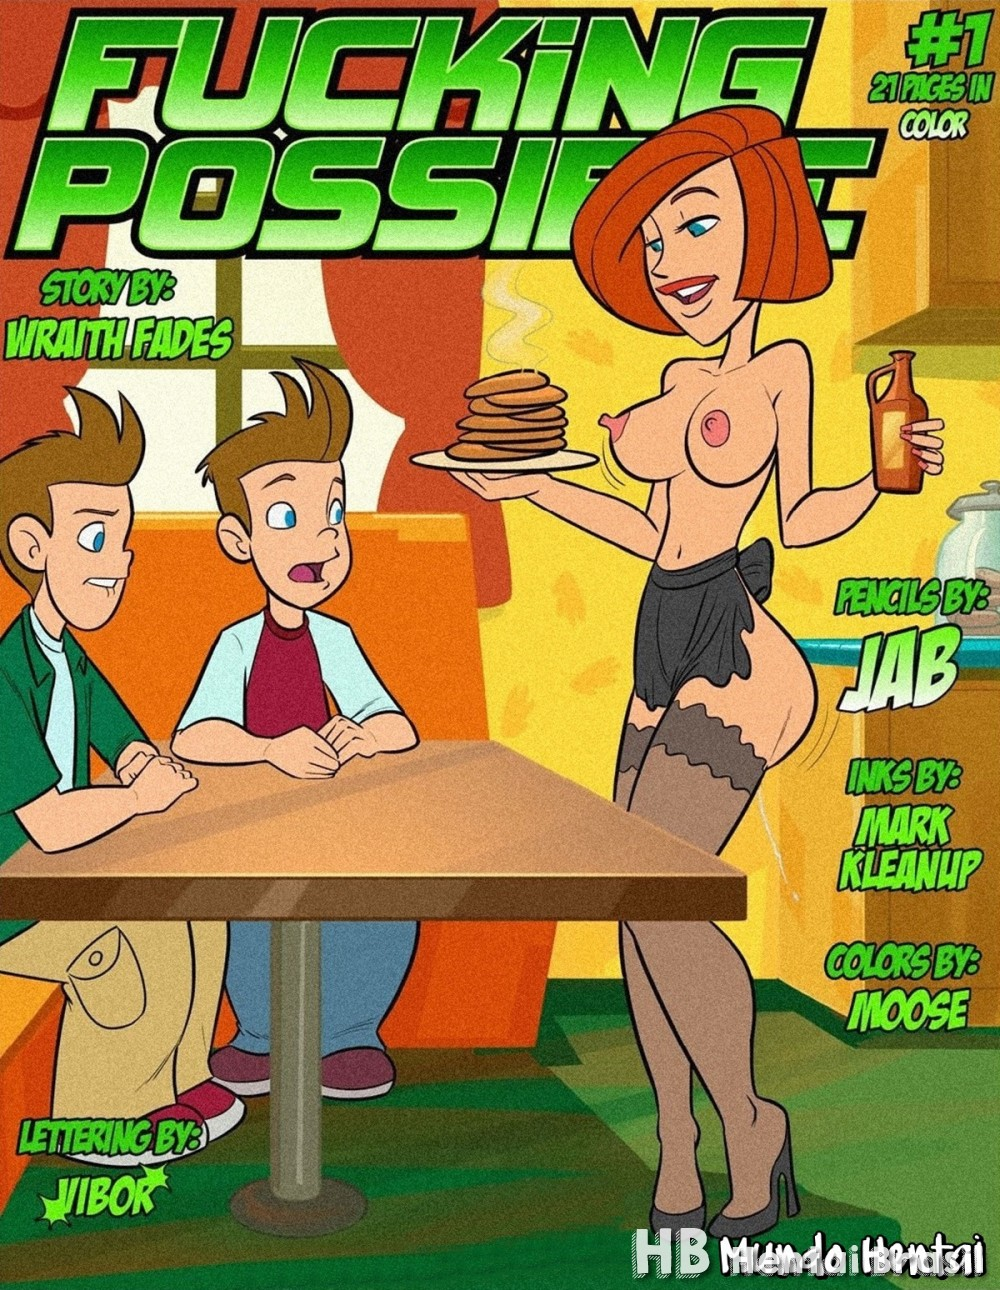 kim possible fucking possible 1 0 hentai brasil hq - Kim Possible - Fucking Possible #1 Hentai HQ